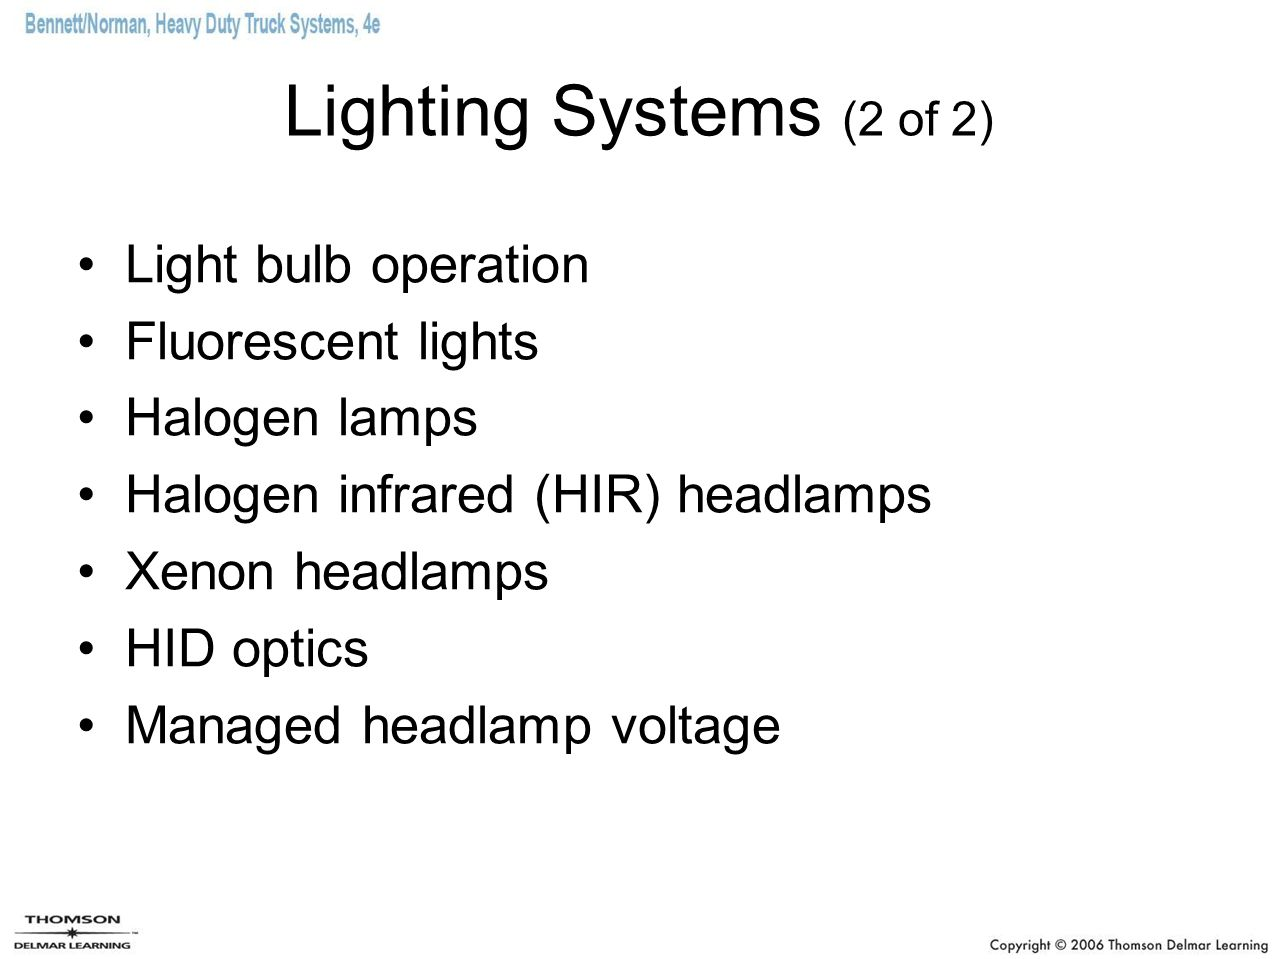 Lighting Systems (2 of 2) Light bulb operation Fluorescent lights